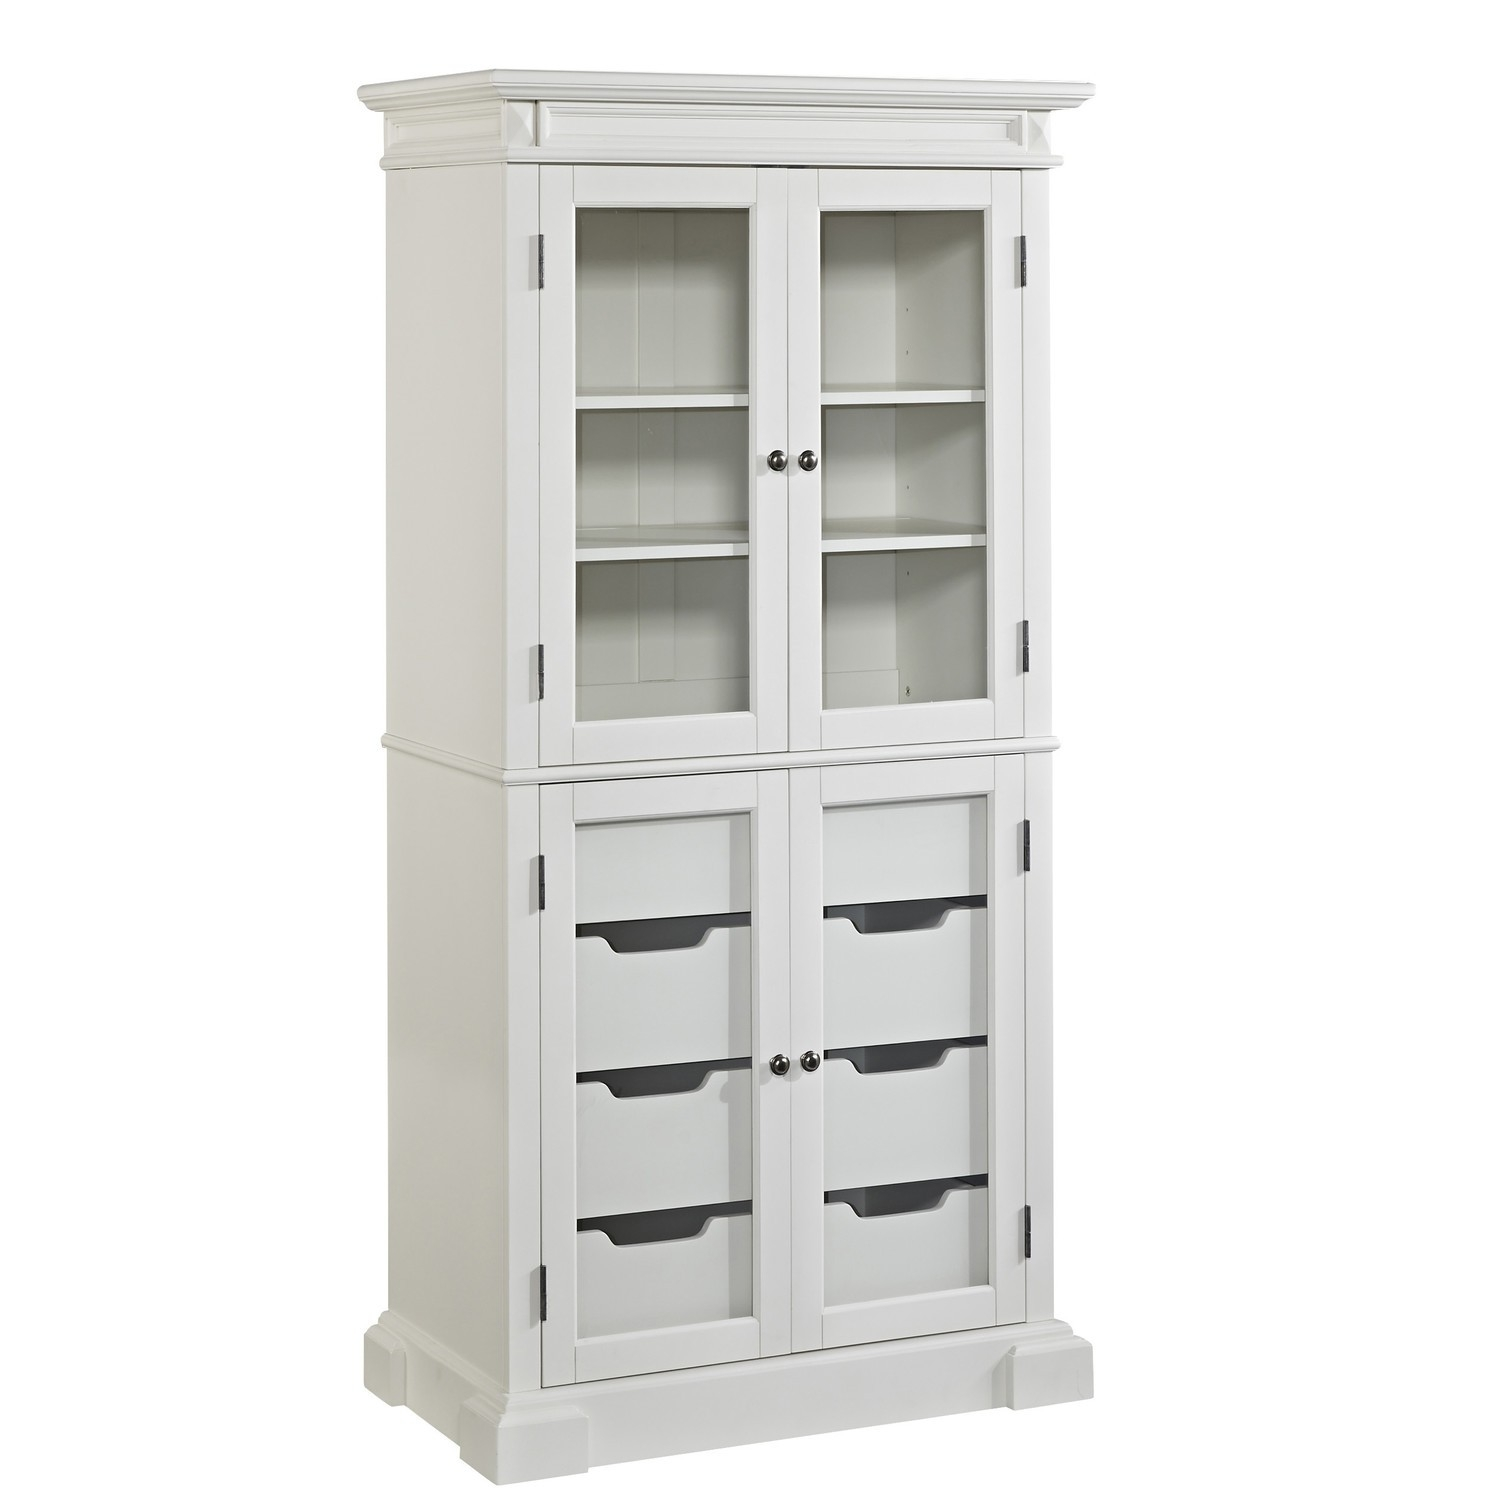 Kitchen Storage Cabinets With Glass Doors